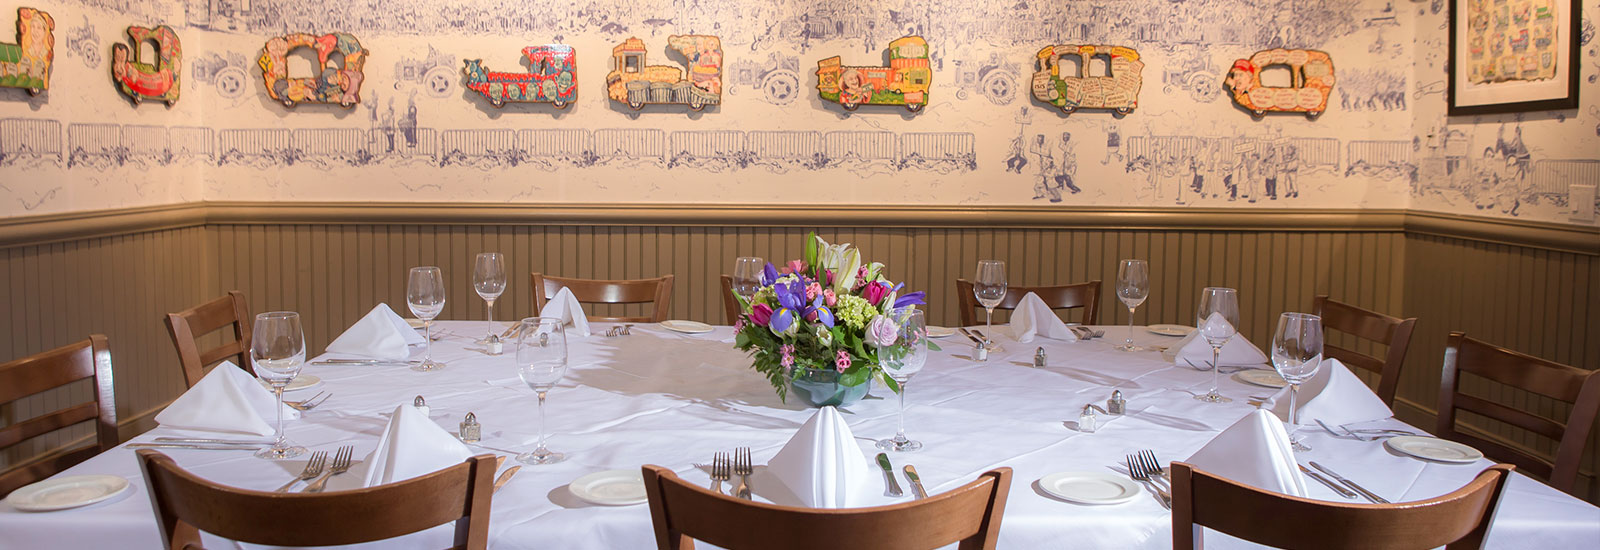 Private party room with buffet at Red Fish Grill set up for a Mardi Gras themed social event.